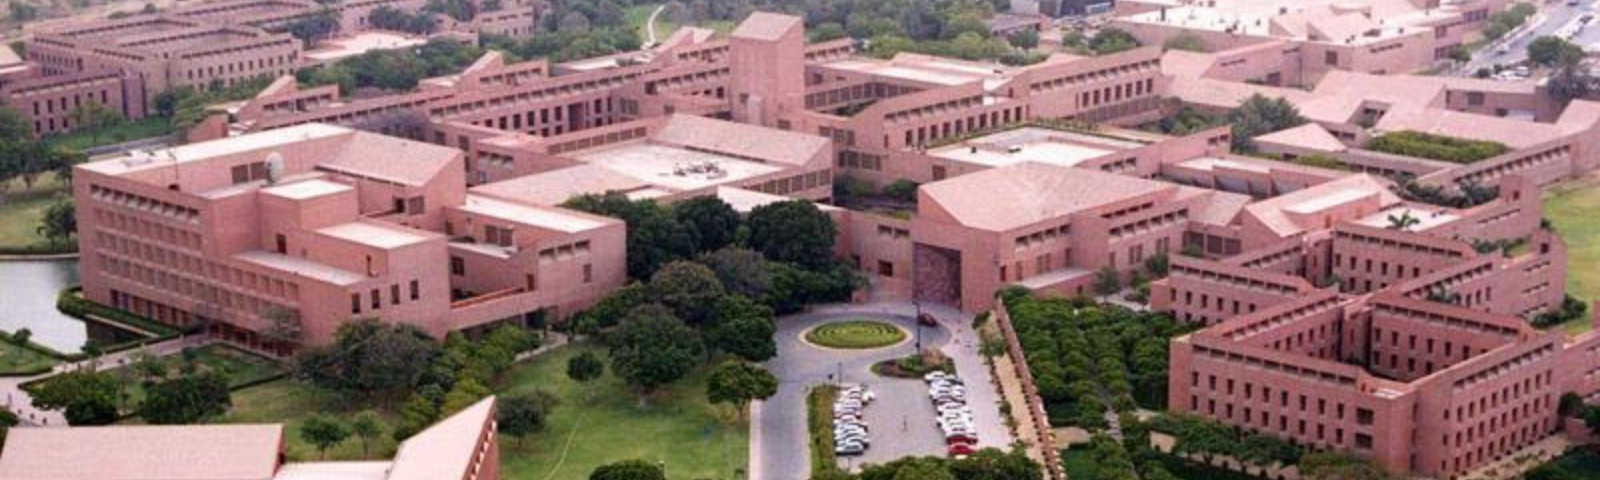 Partial view of the Aga Khan University Hospital